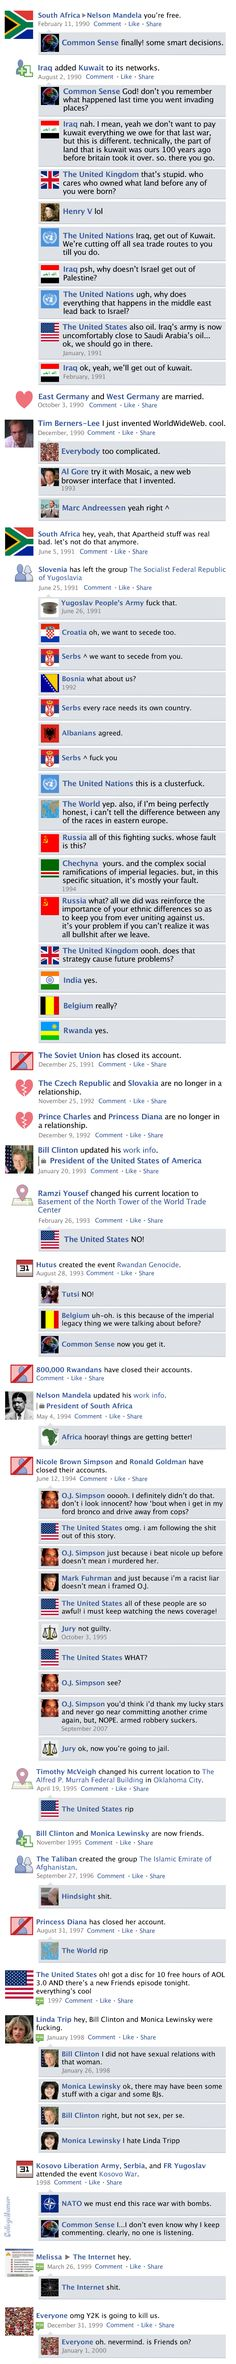 Facebook News Feed History of the World > 1990s